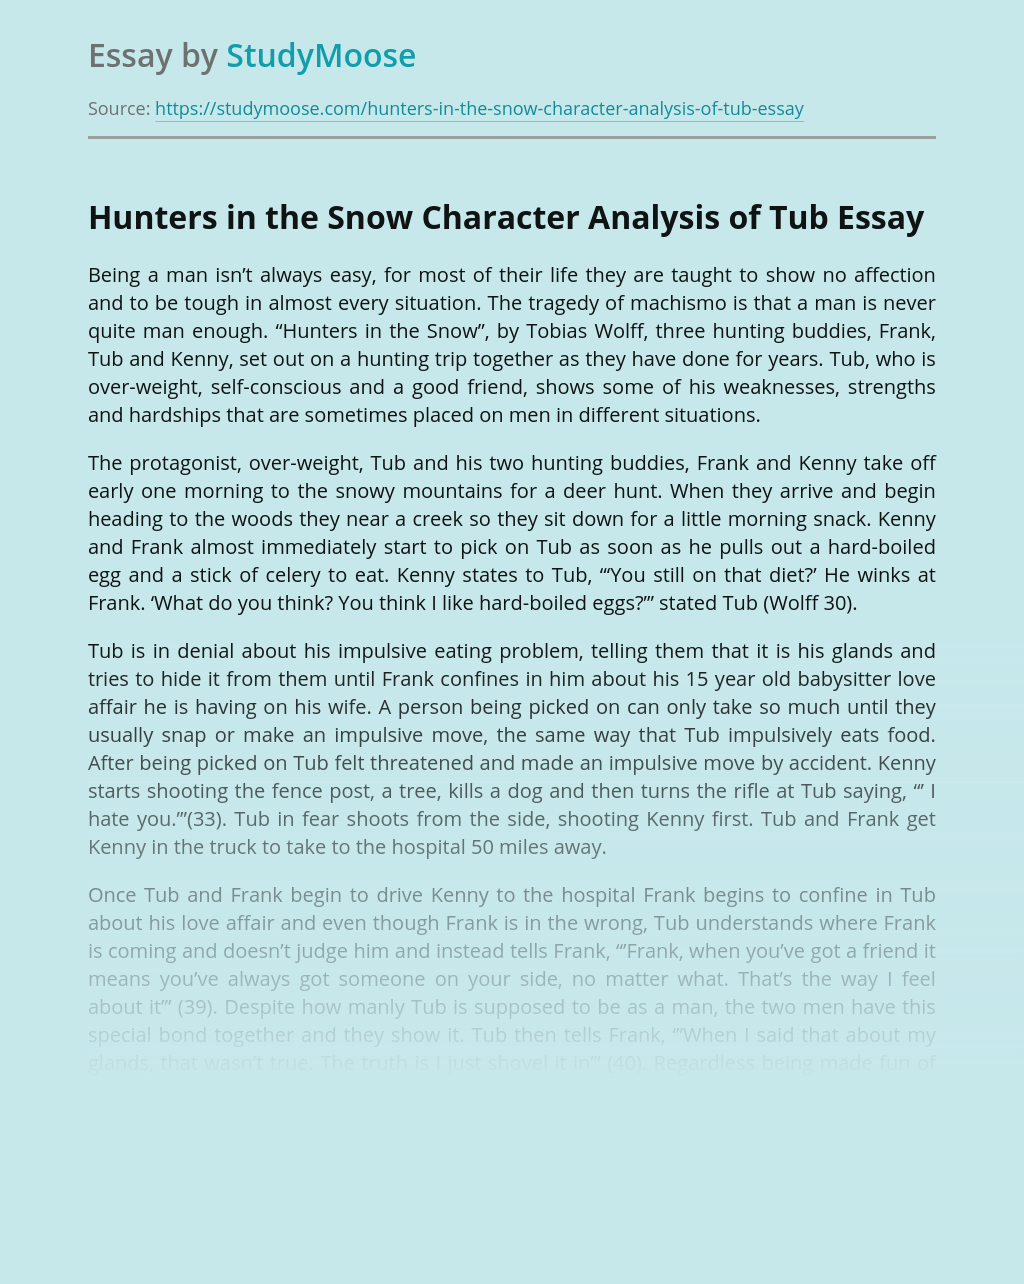 Hunters in the Snow Character Analysis of Tub